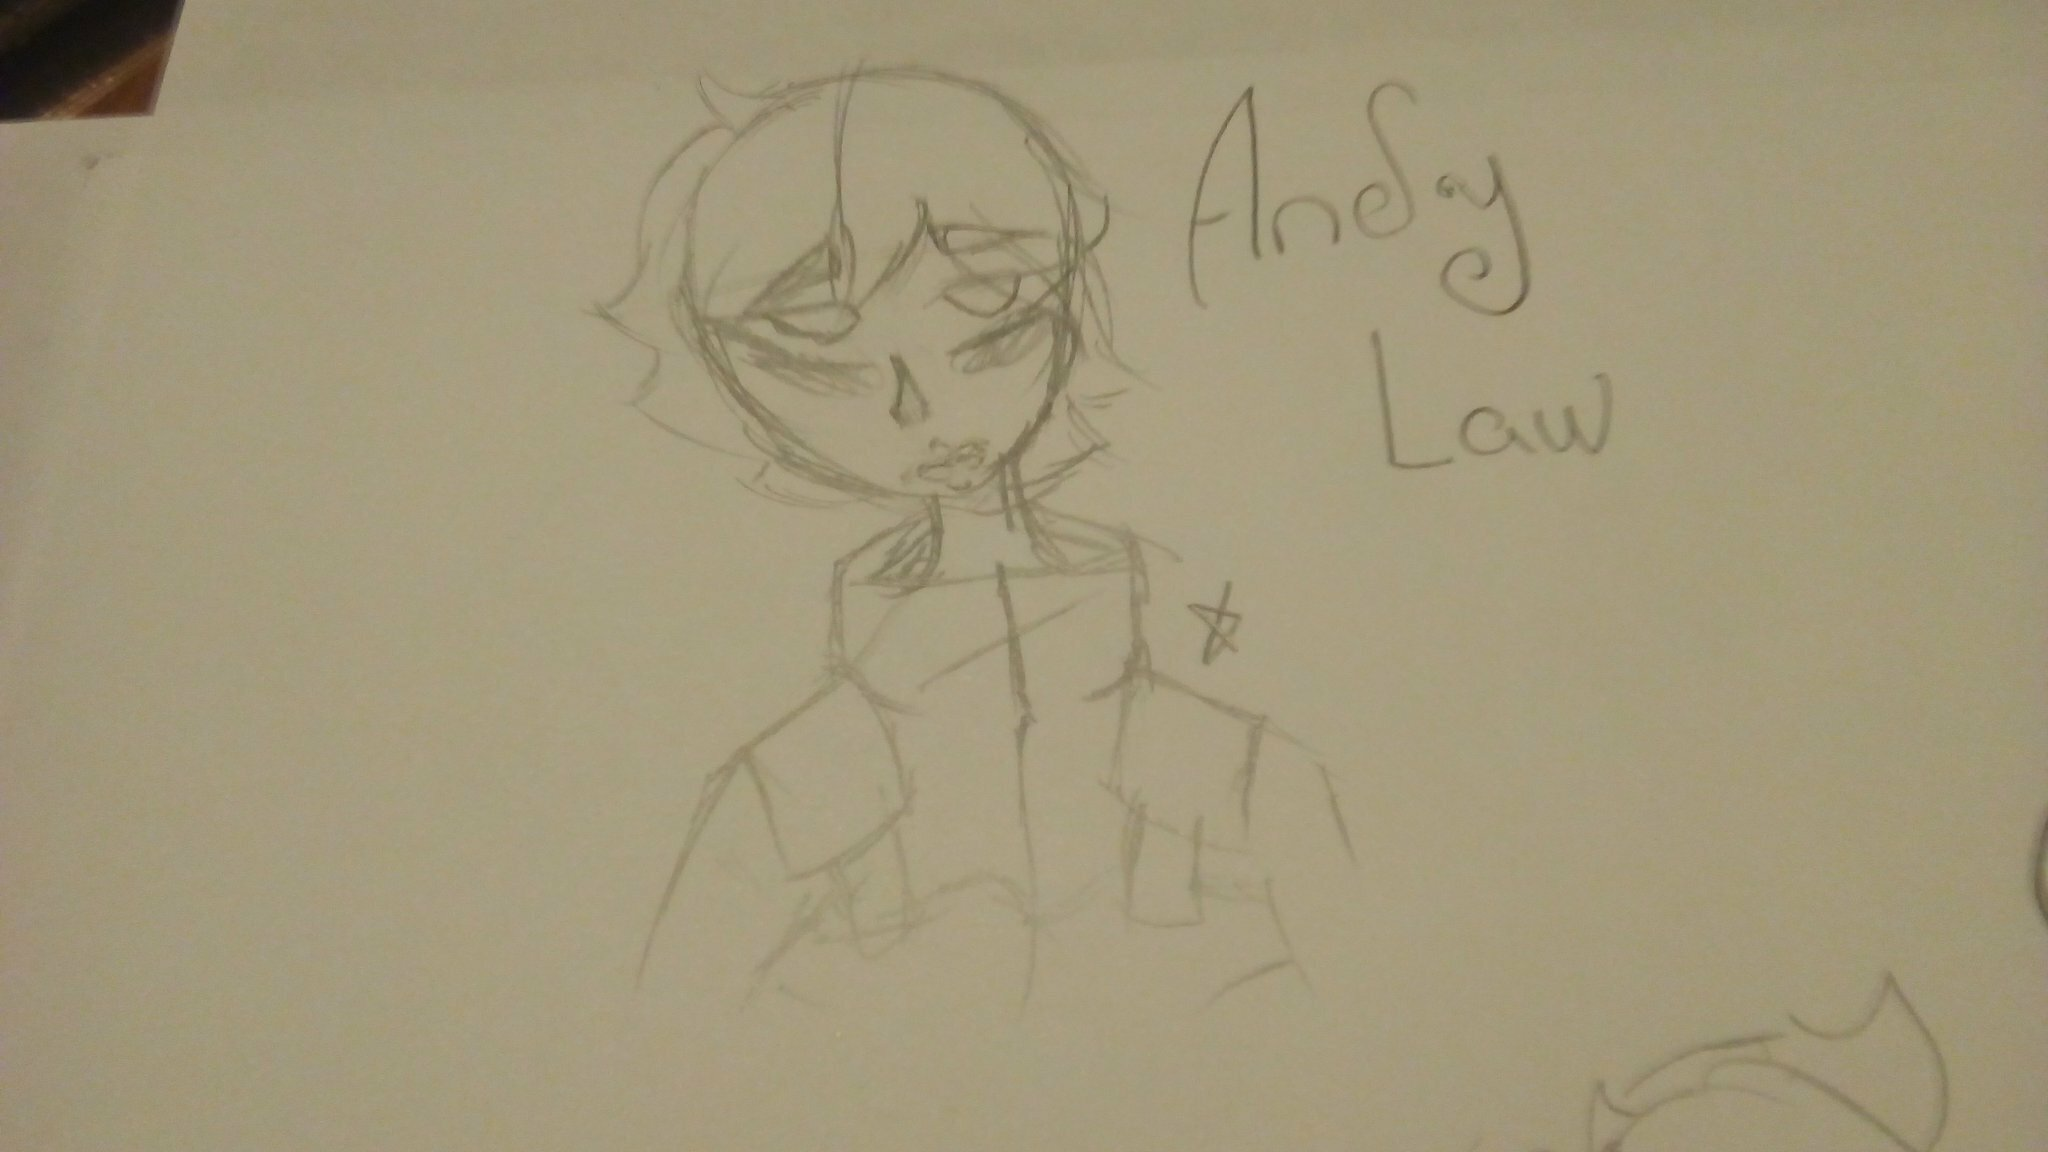 Andy Law ilustration by: @Lisaneki